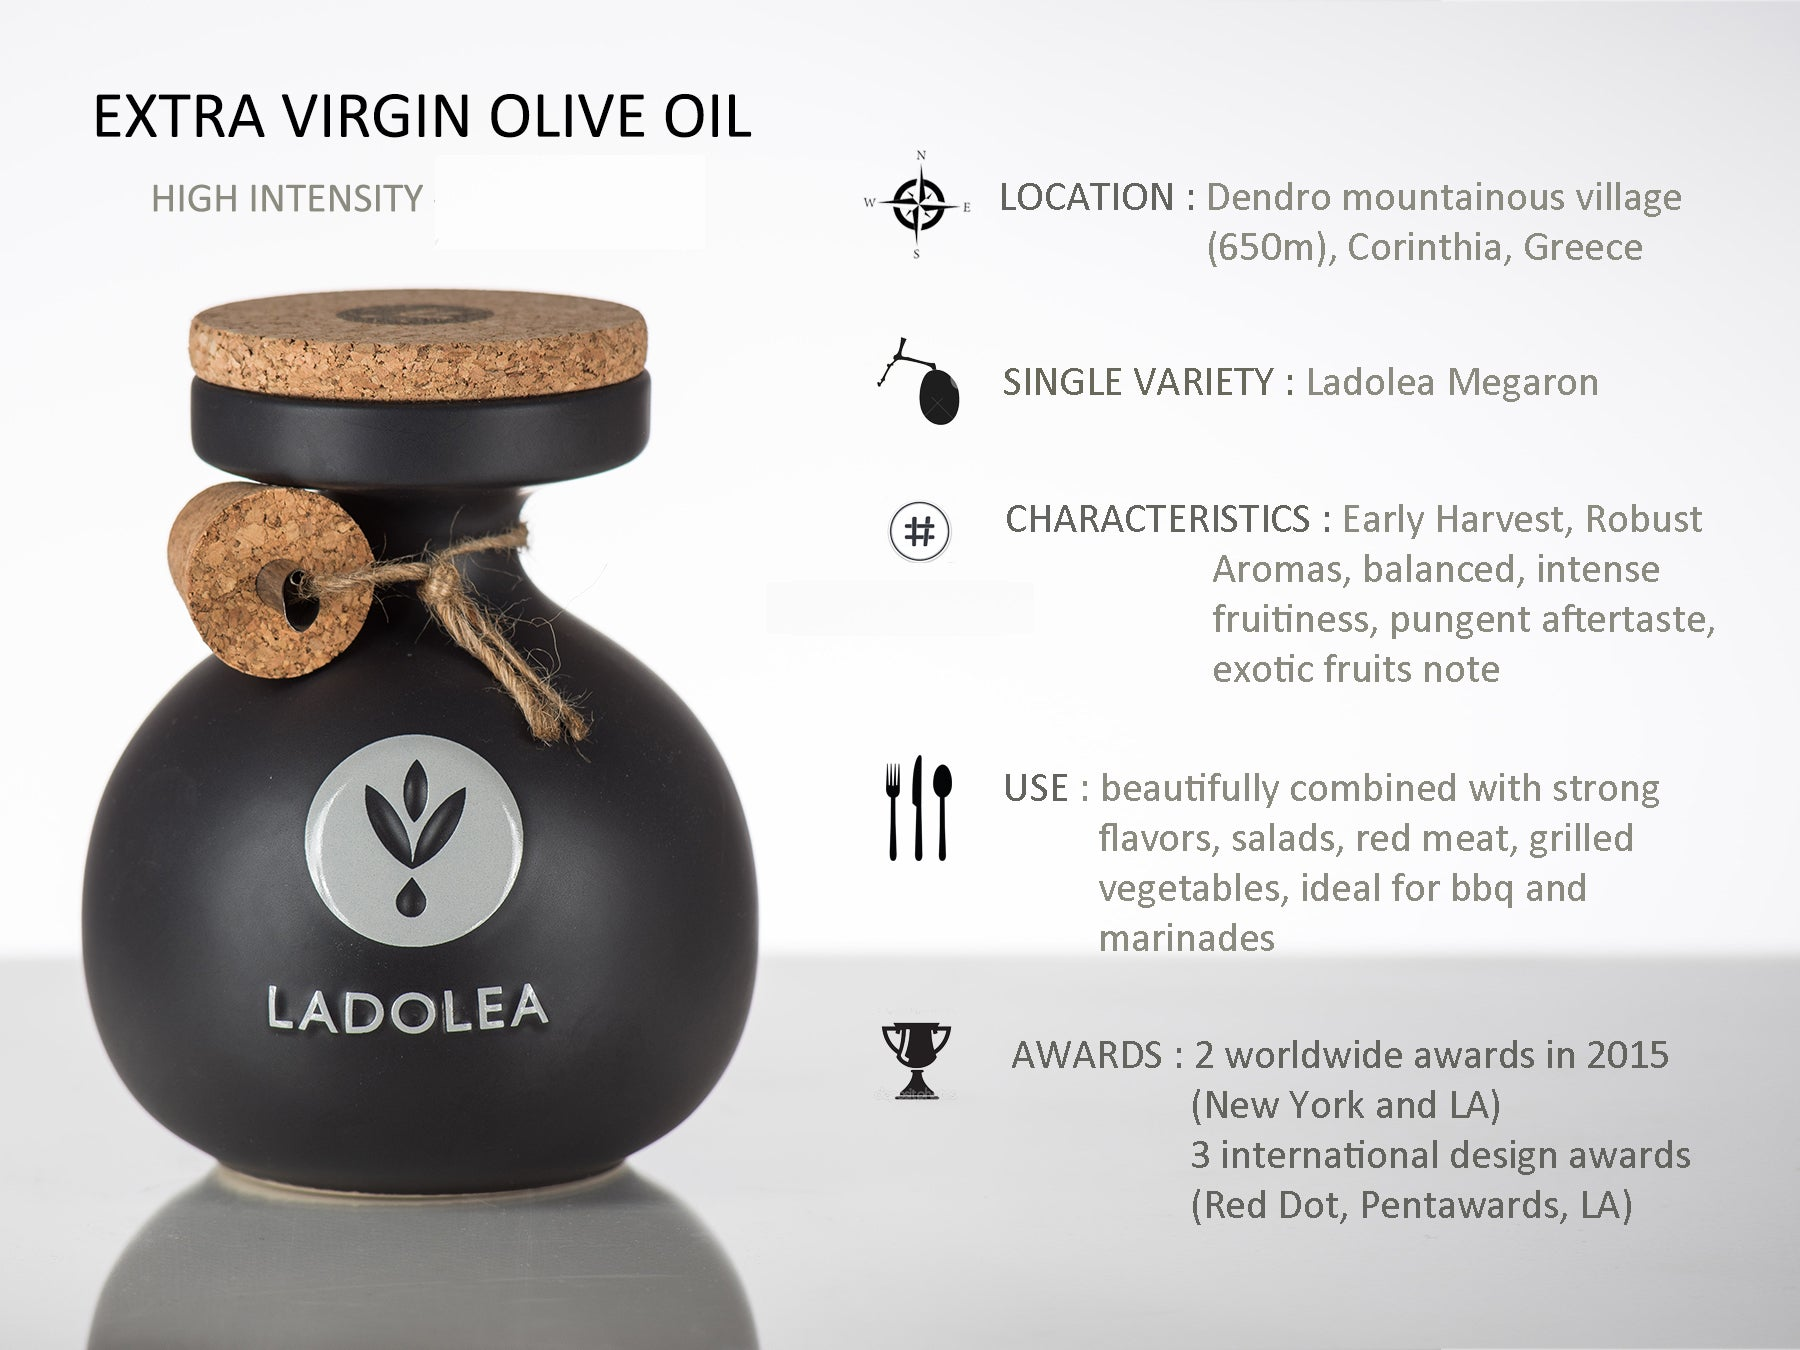 Ladolea Greek Extra Virgin Olive Oil in a Black Ceramic Pot - 200ml